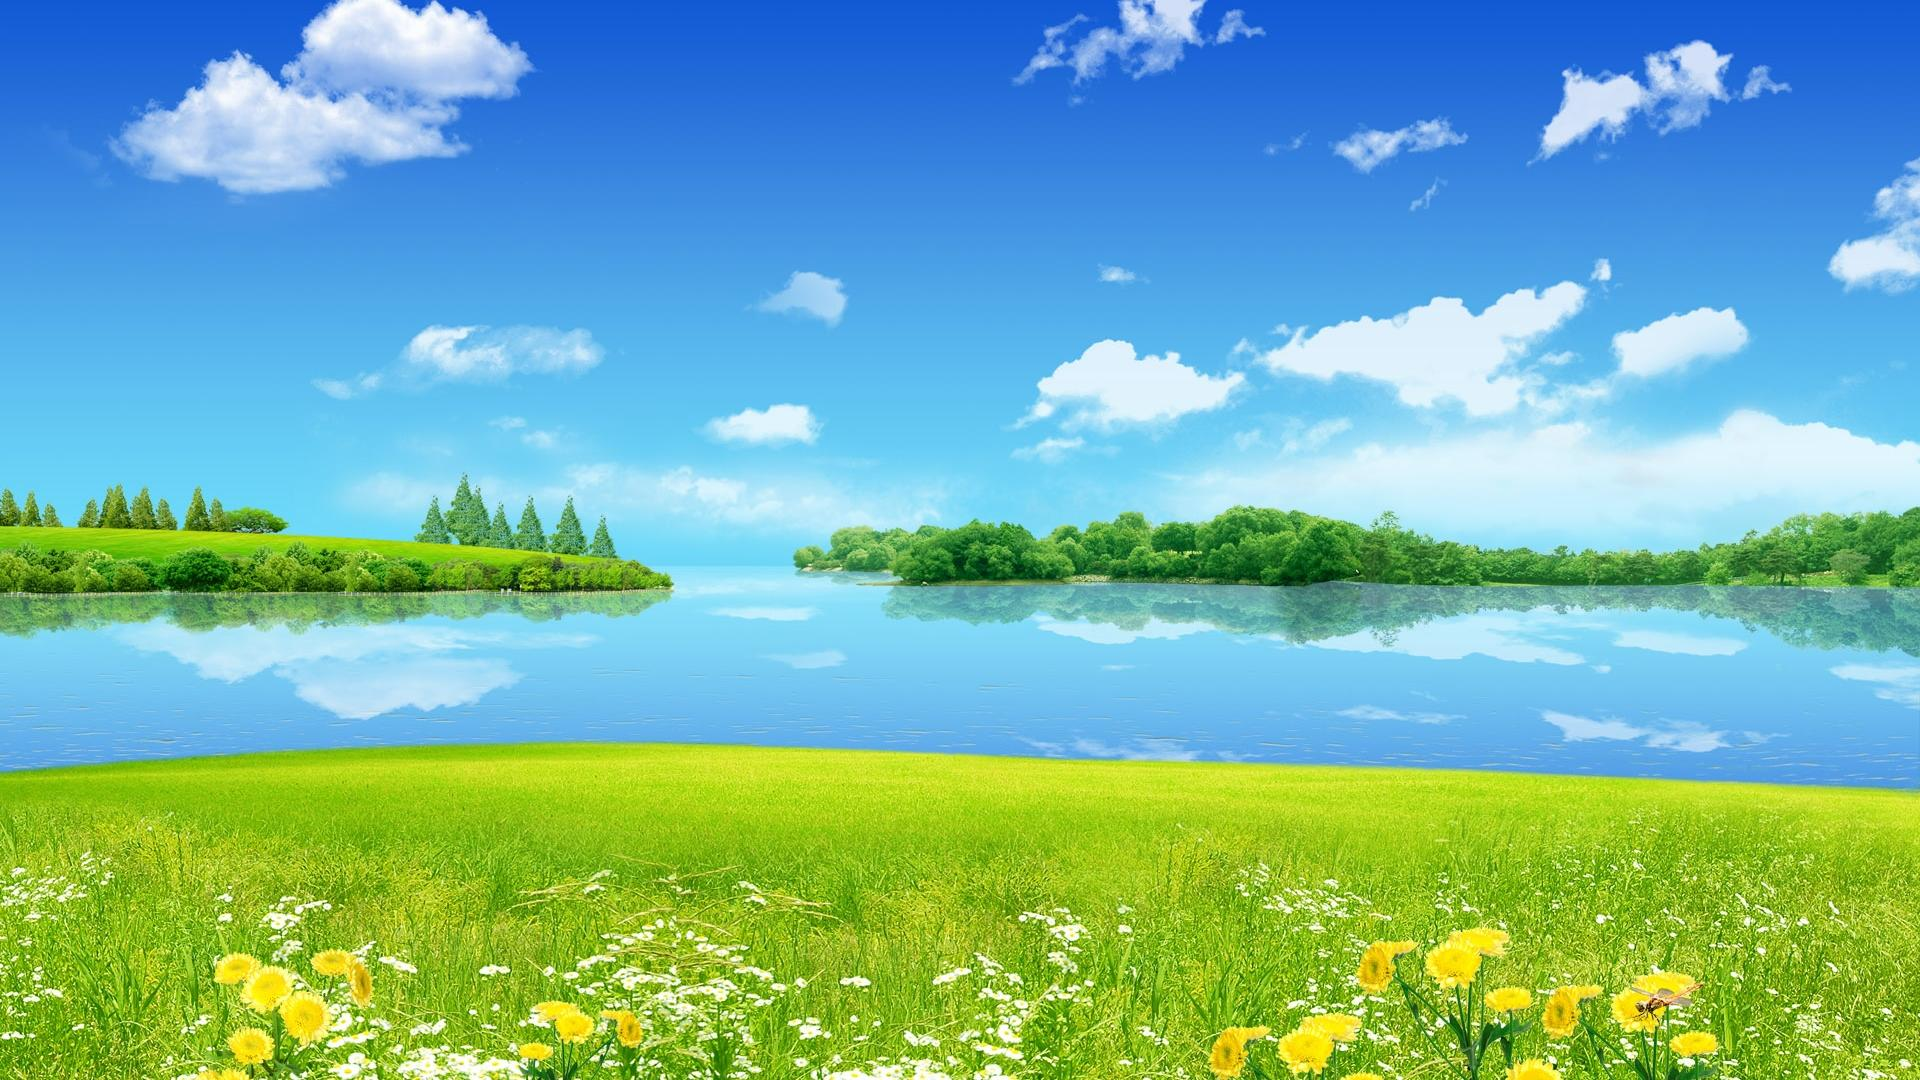 31 Summer Hd Wallpaper 1920x1080 On Wallpapersafari